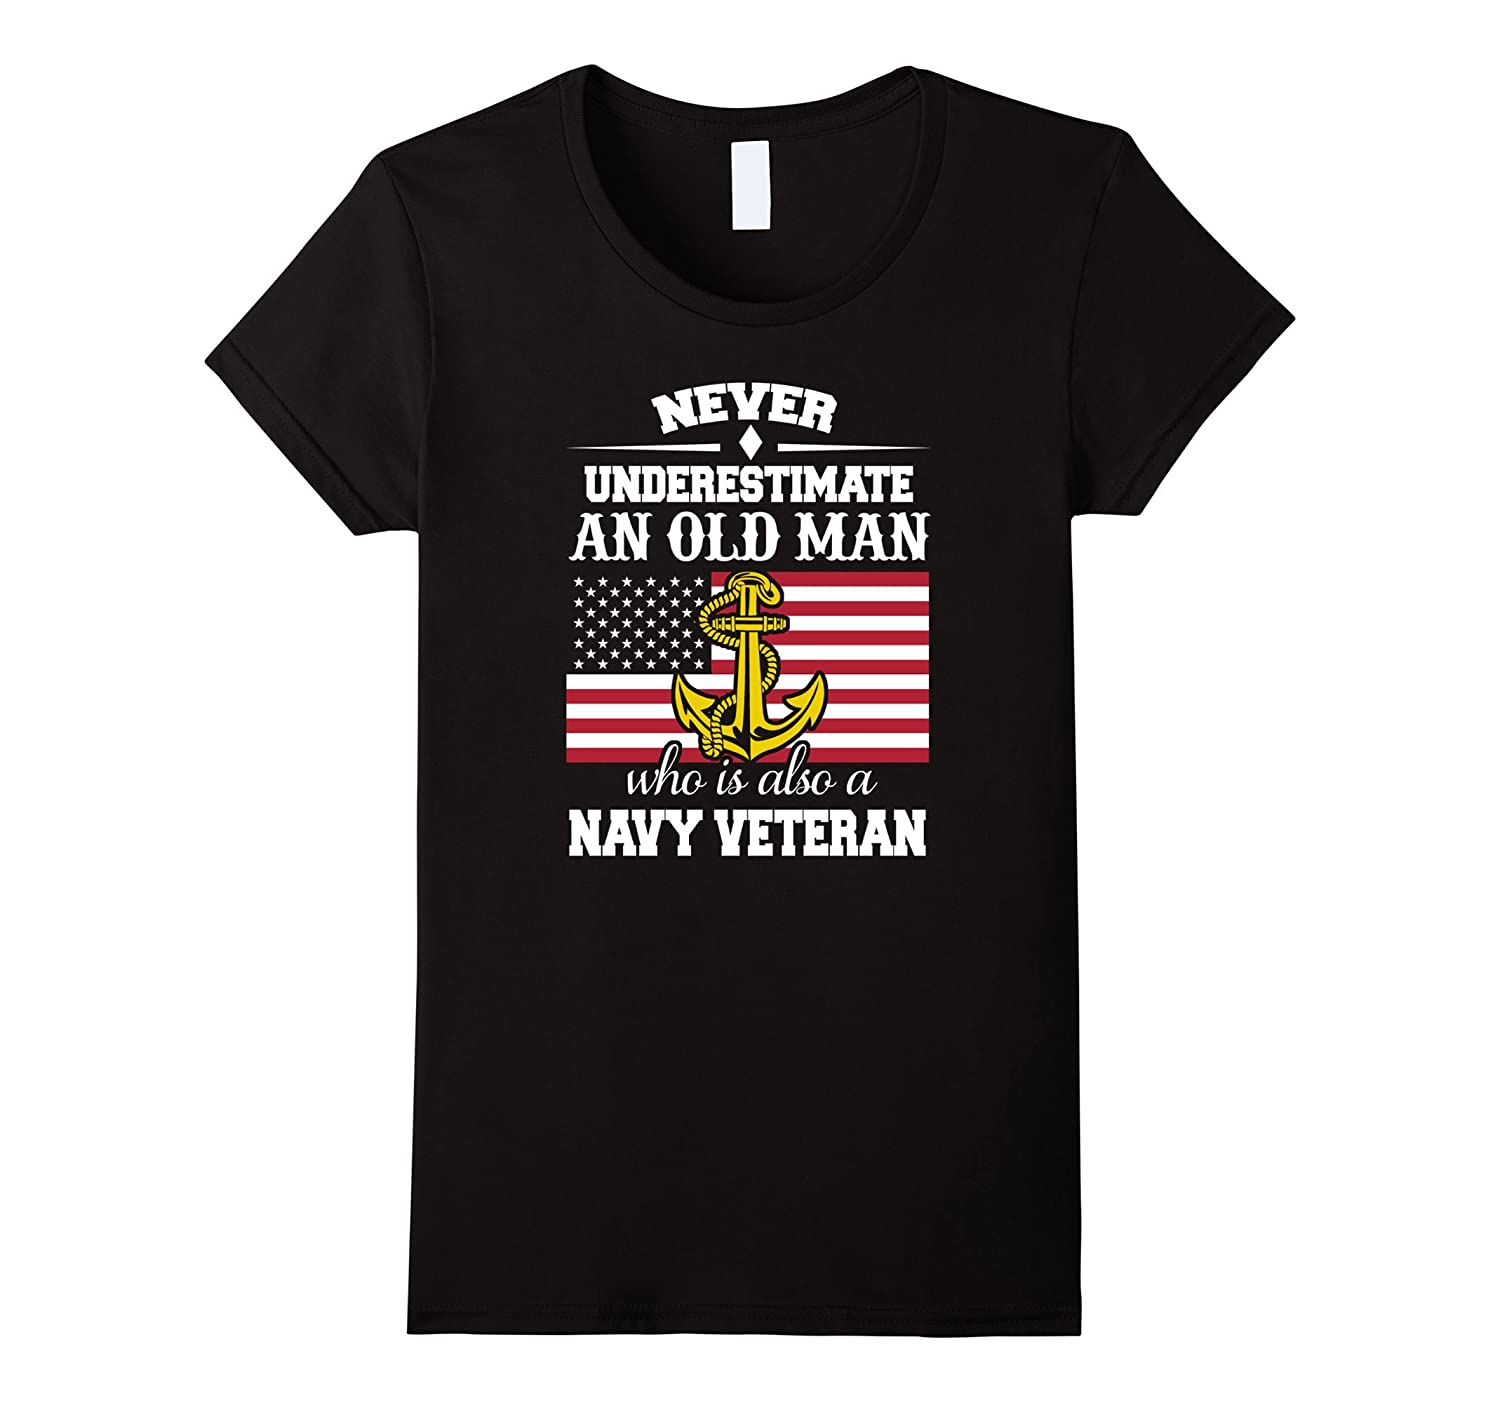 Funny Never Underestimate an Old Man Navy Veteran T-shirts